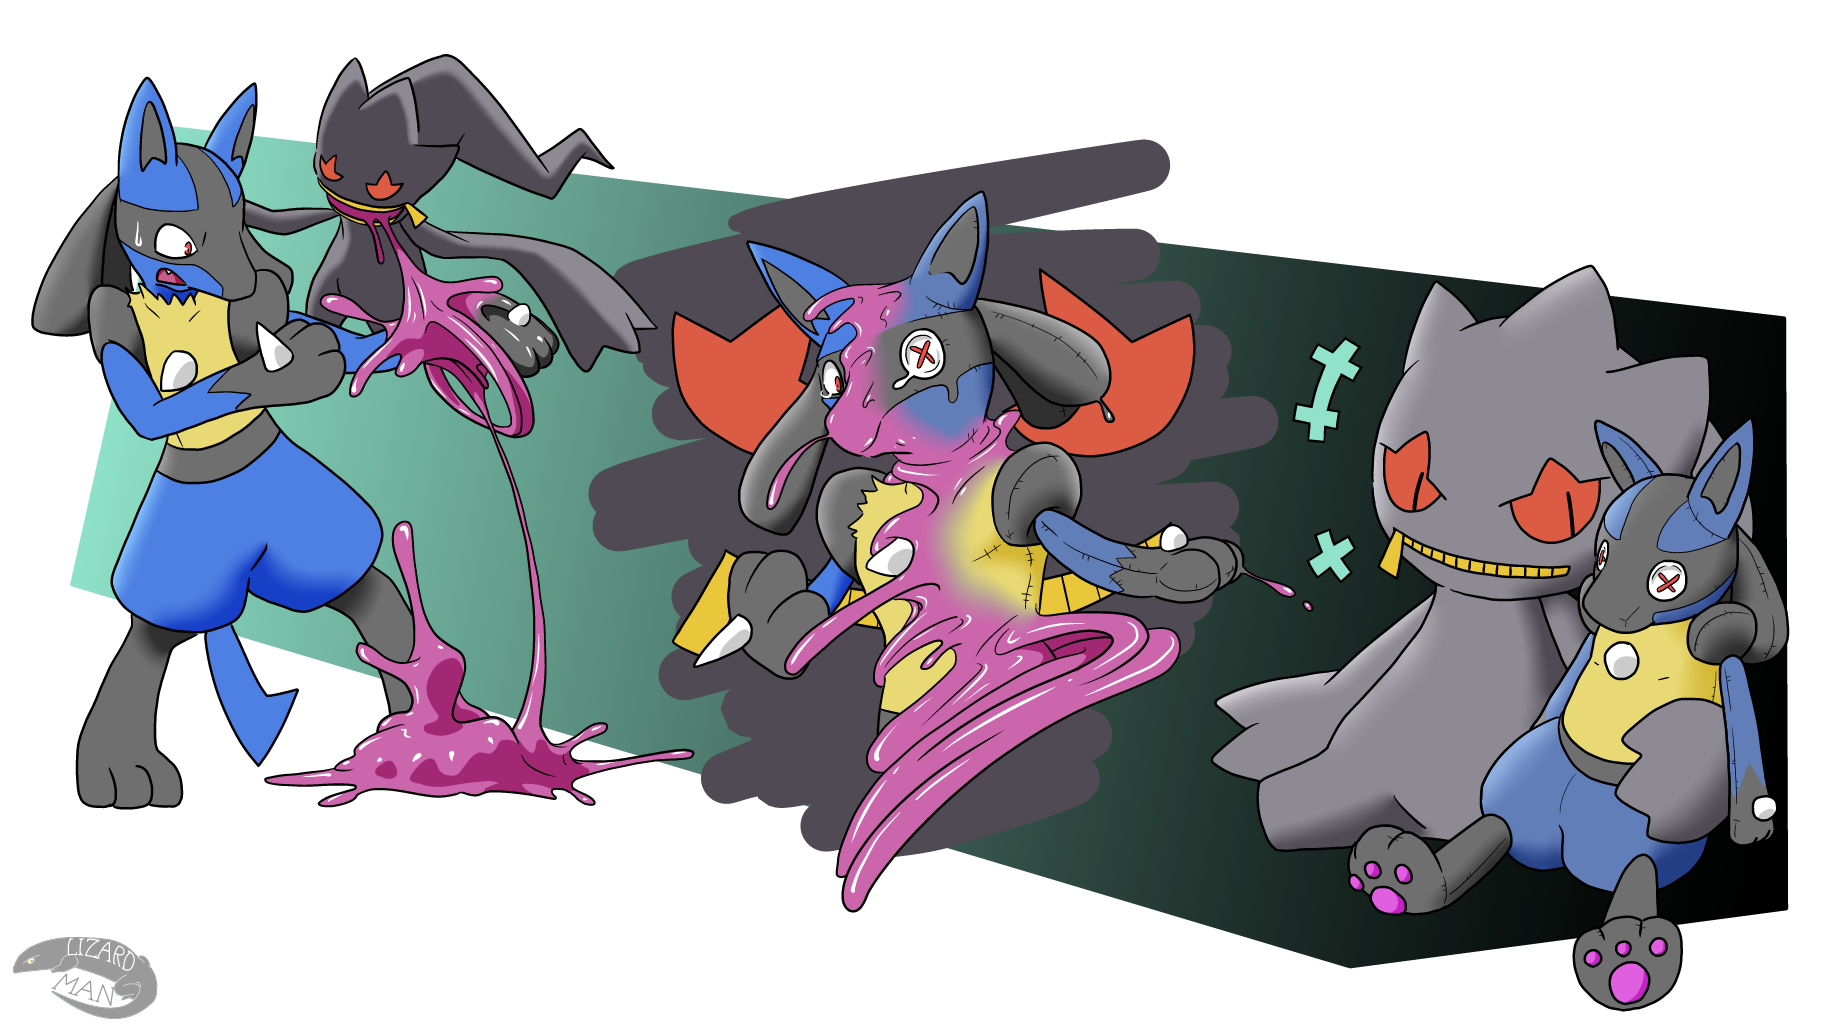 Curse Of Banette By Nesise On Deviantart